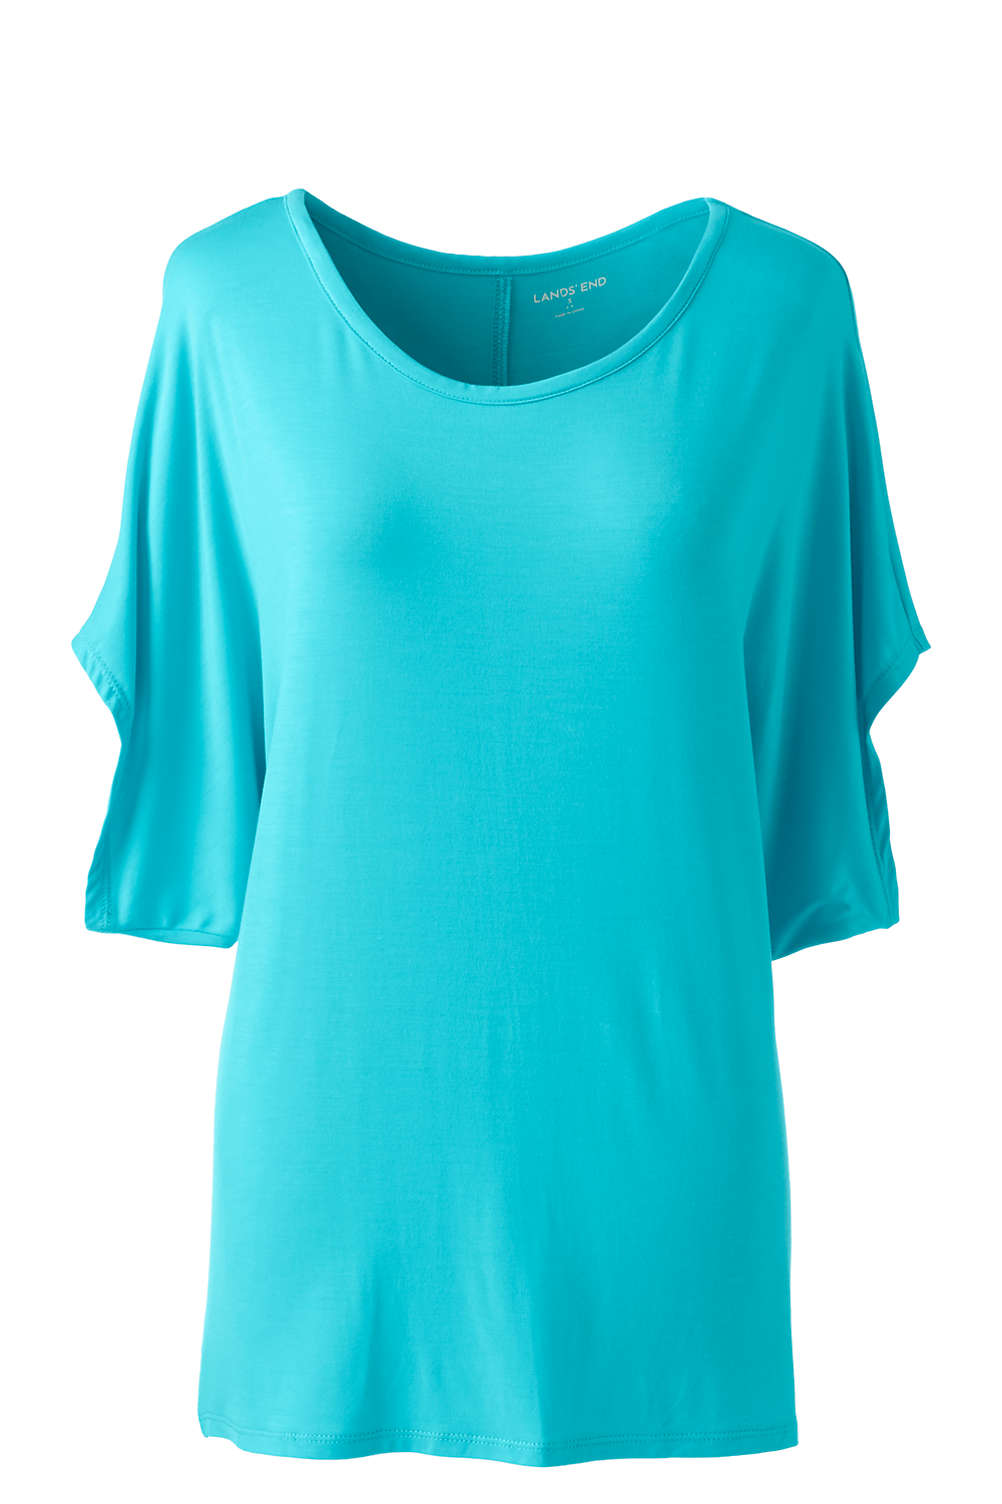 95ae223df1053f Women's Jersey Dolman Sleeve T-Shirt from Lands' End